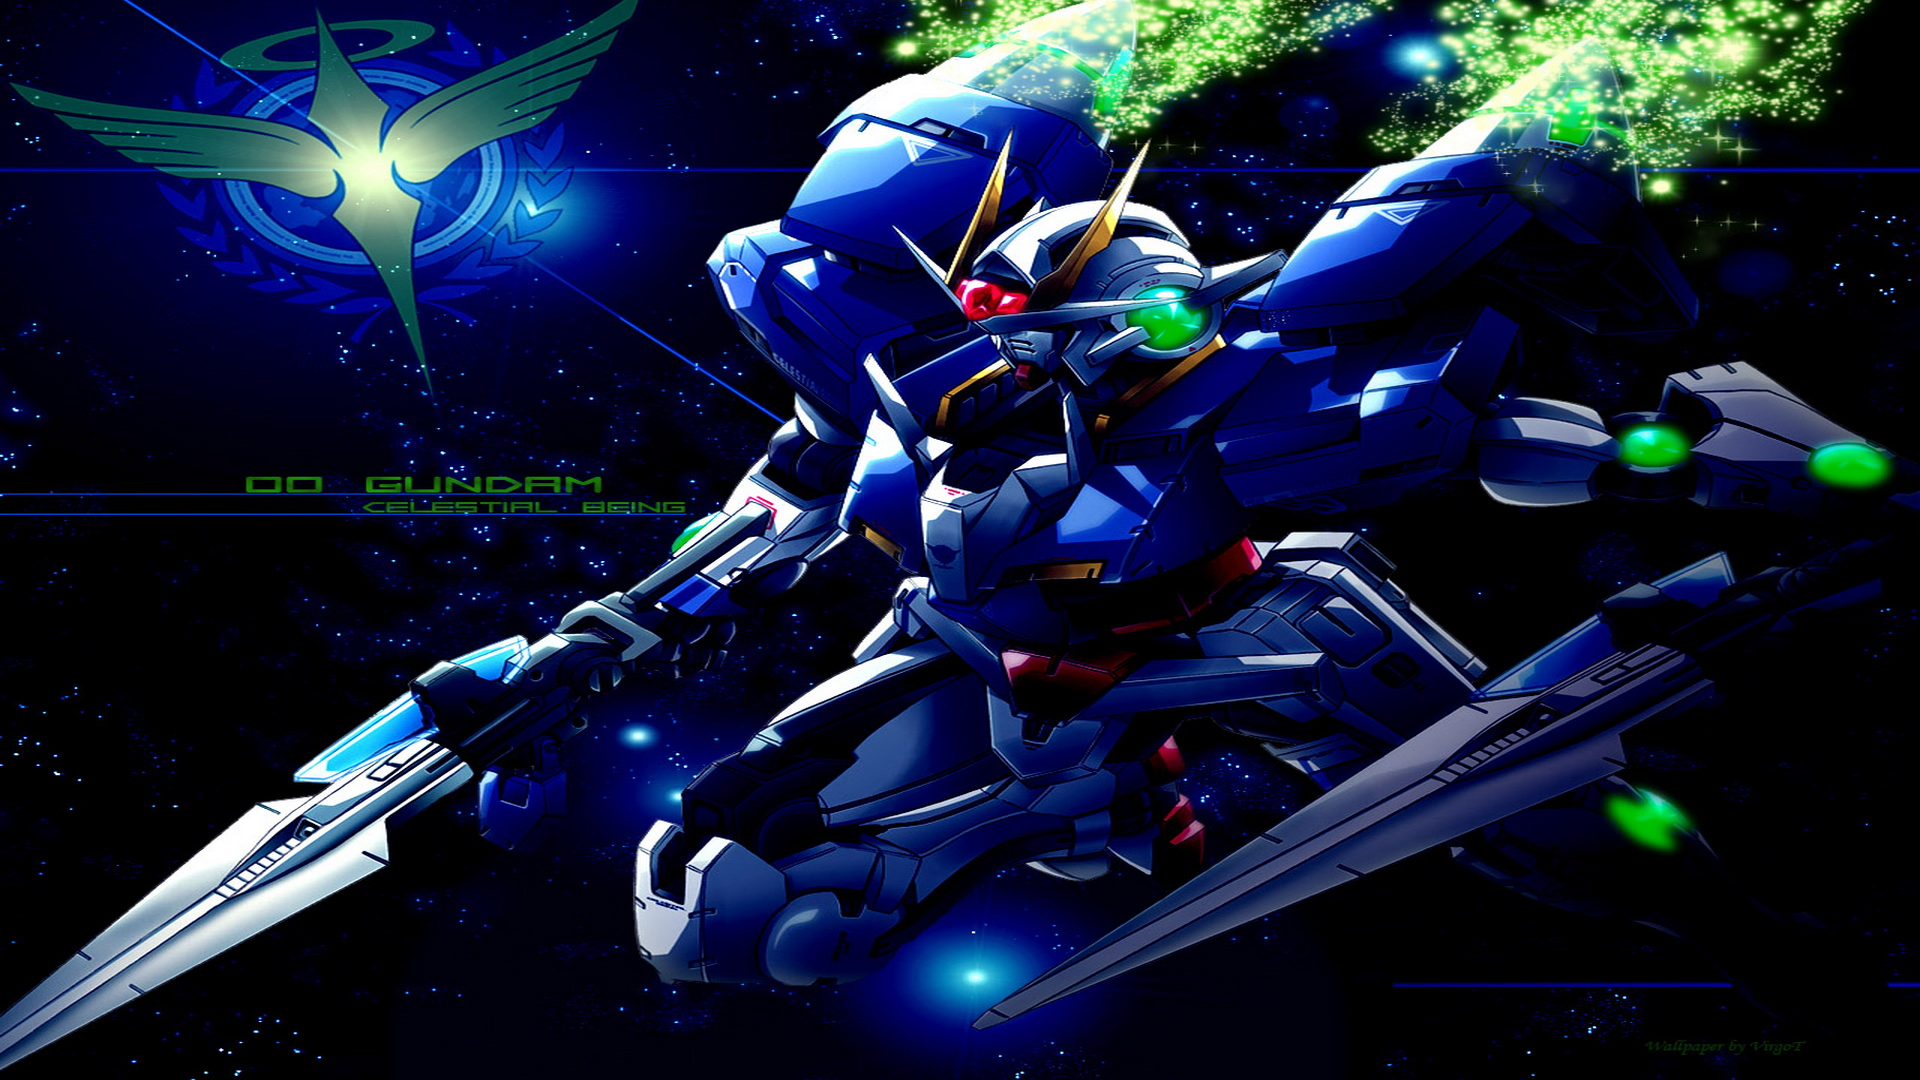 Pin Gundam Wallpapers 1080p 1920x1080